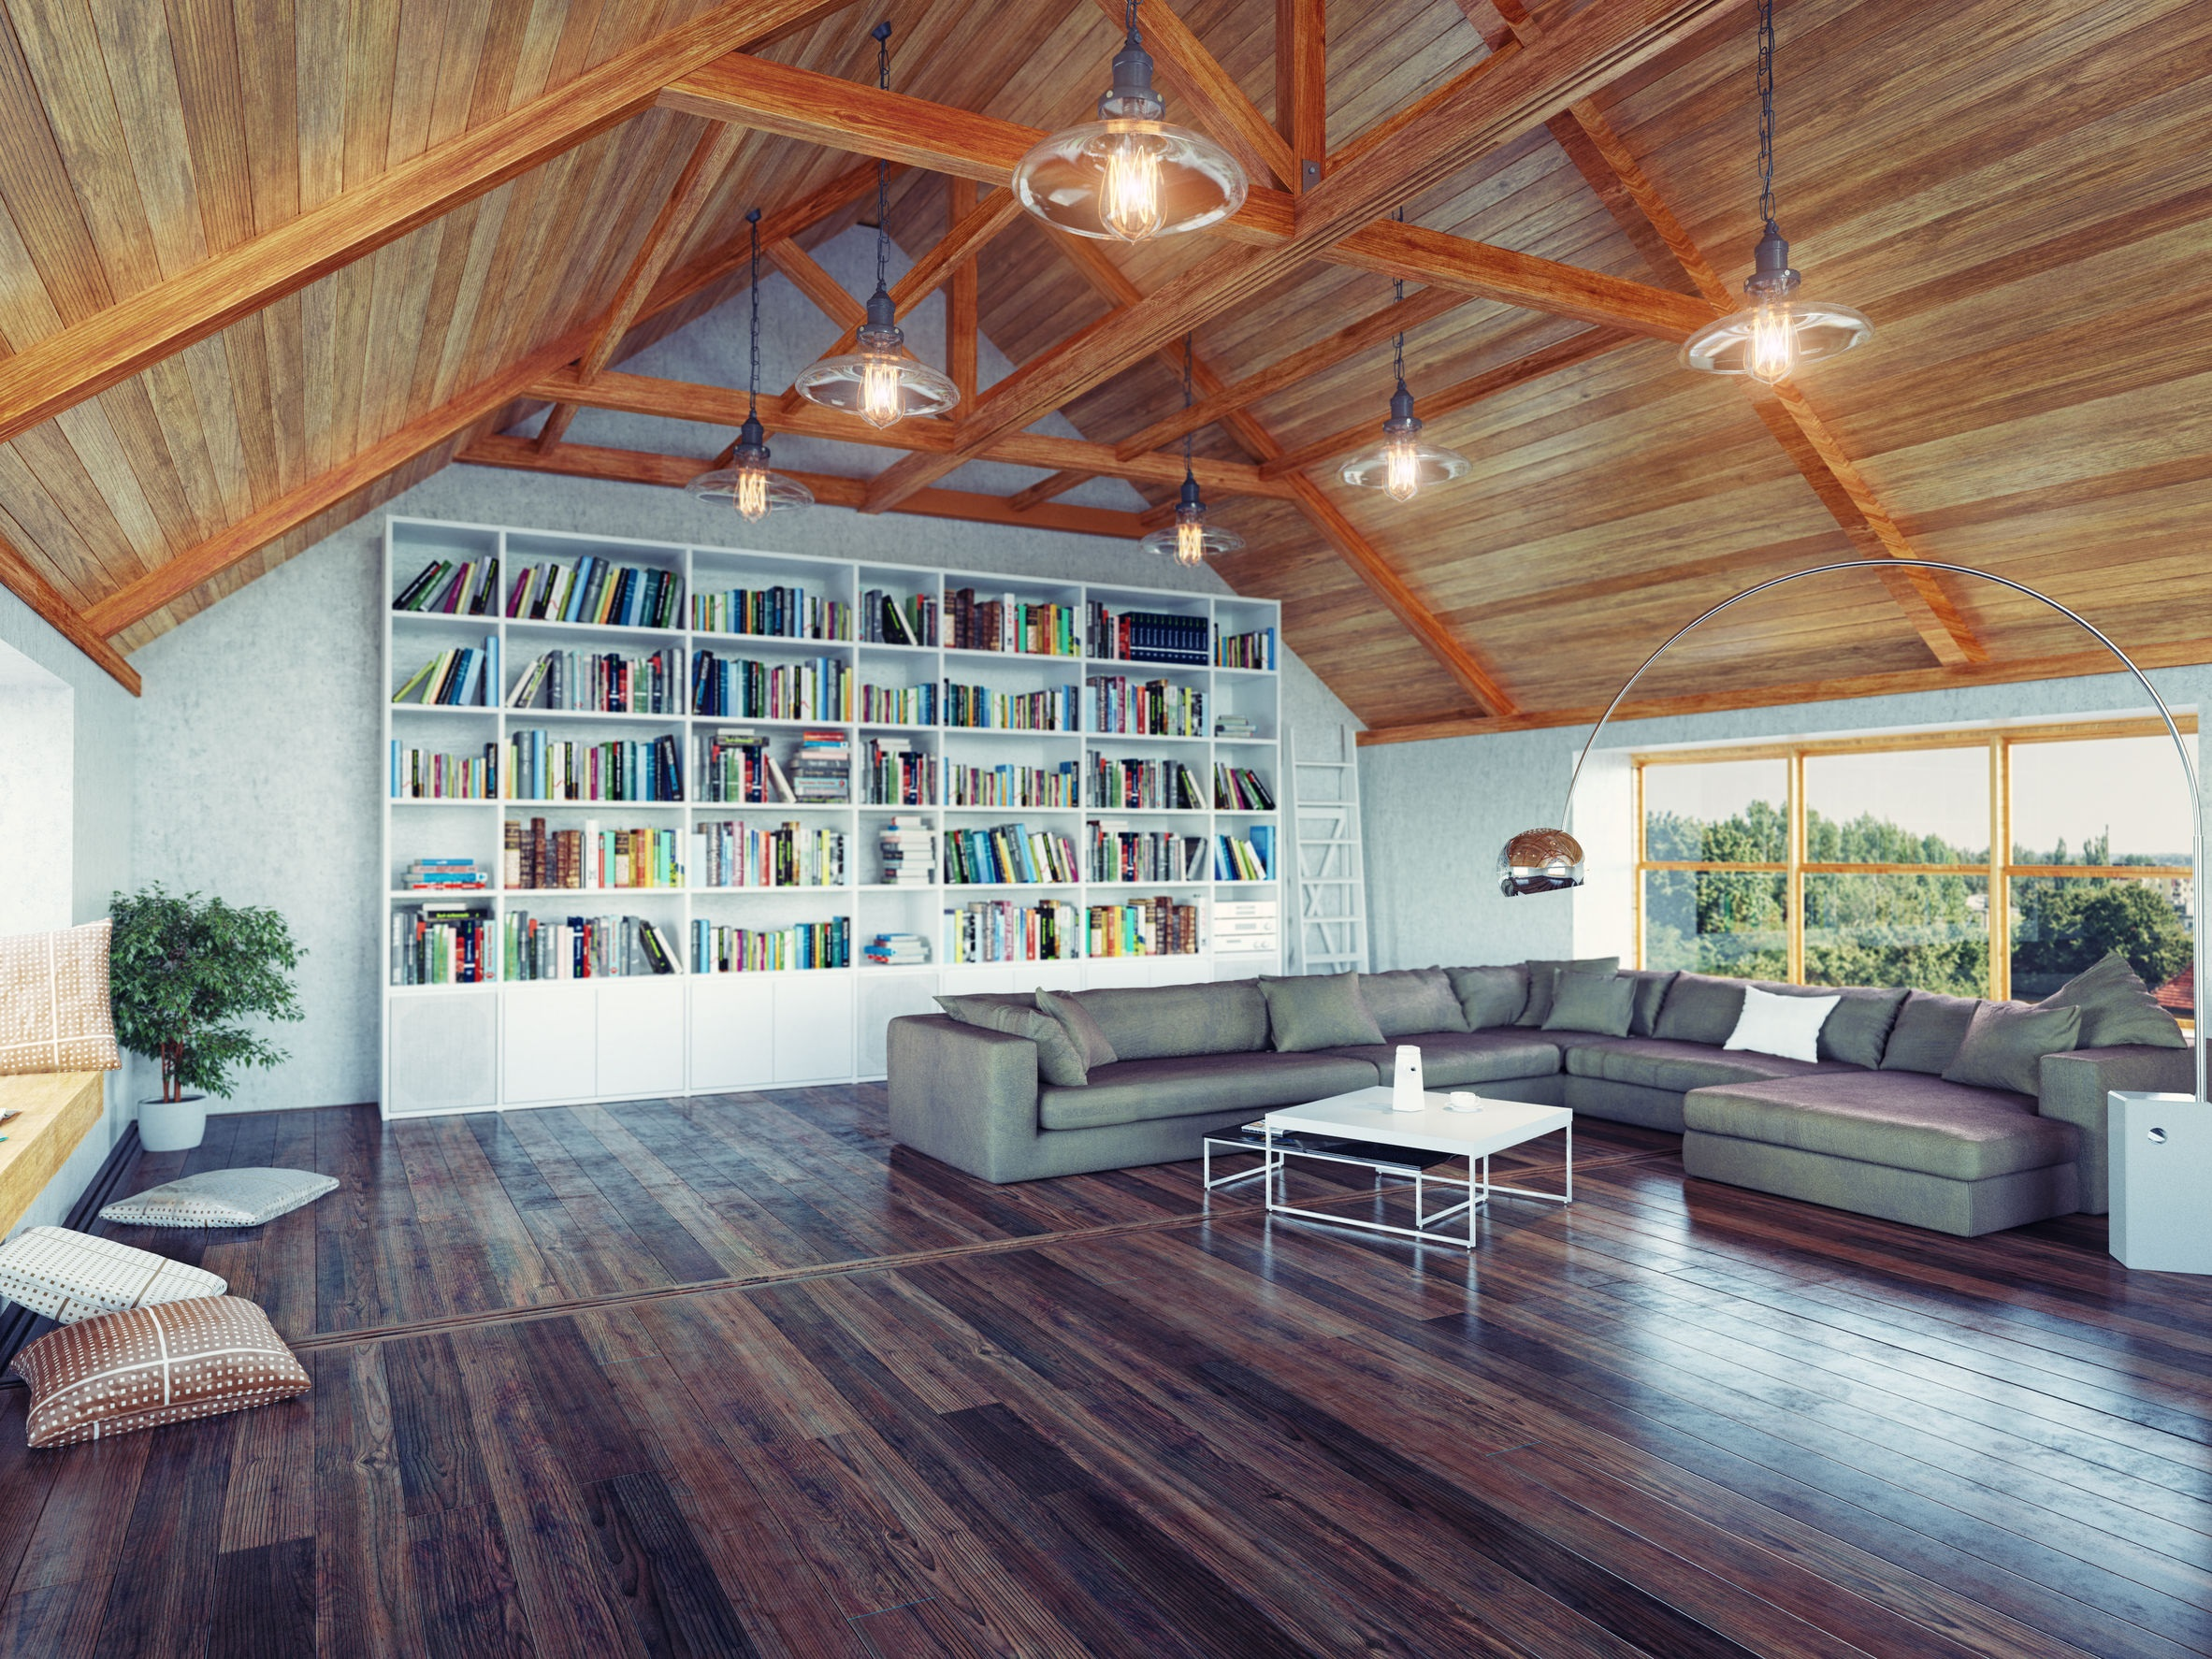 Benefits Of Building The Loft In Your Home By An Experienced And Trusted Company